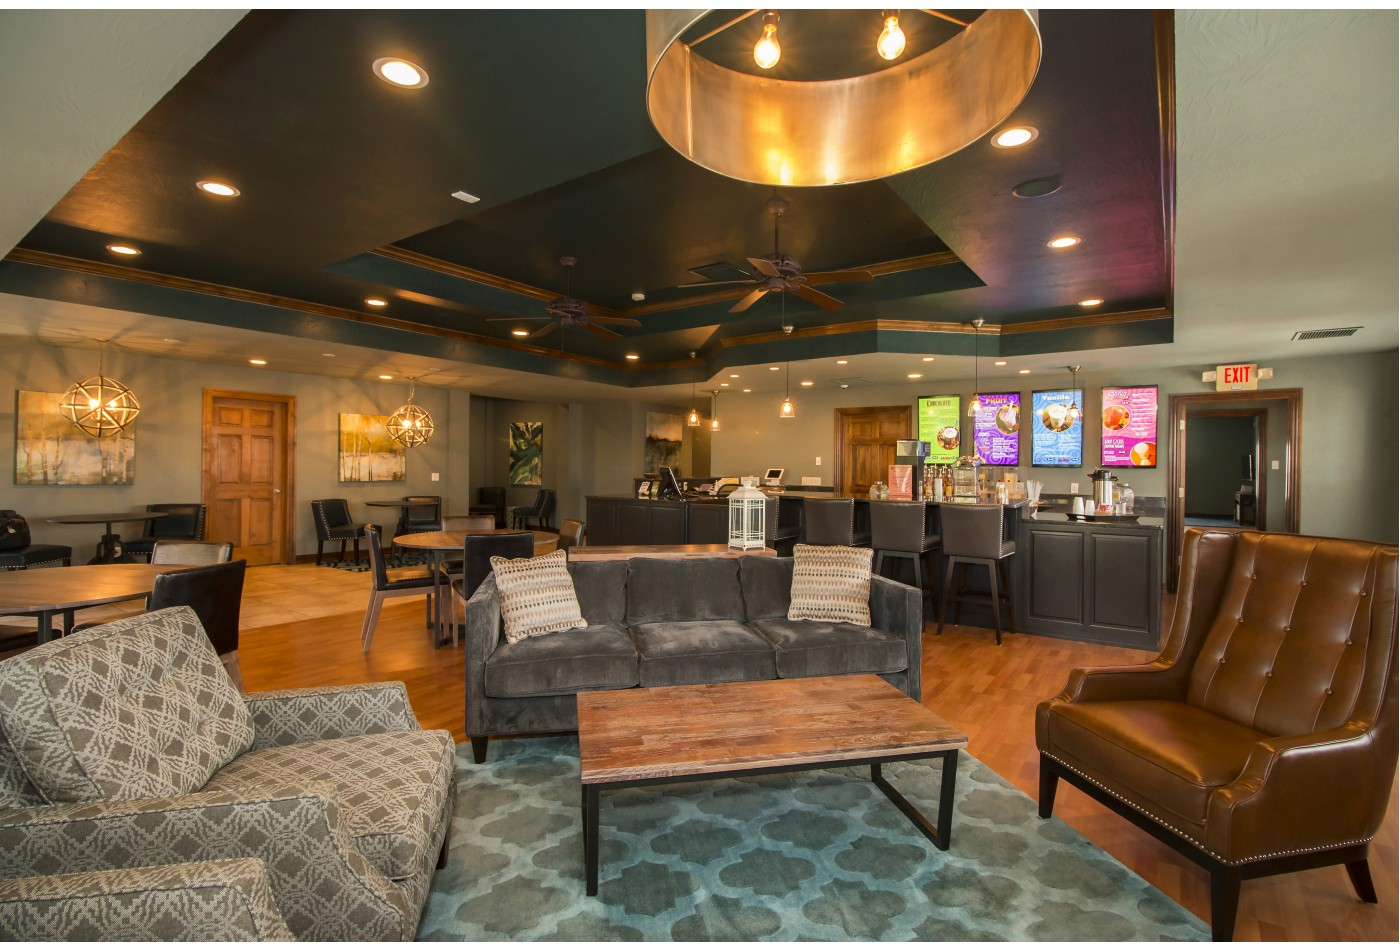 Community clubhouse with smoothie bar